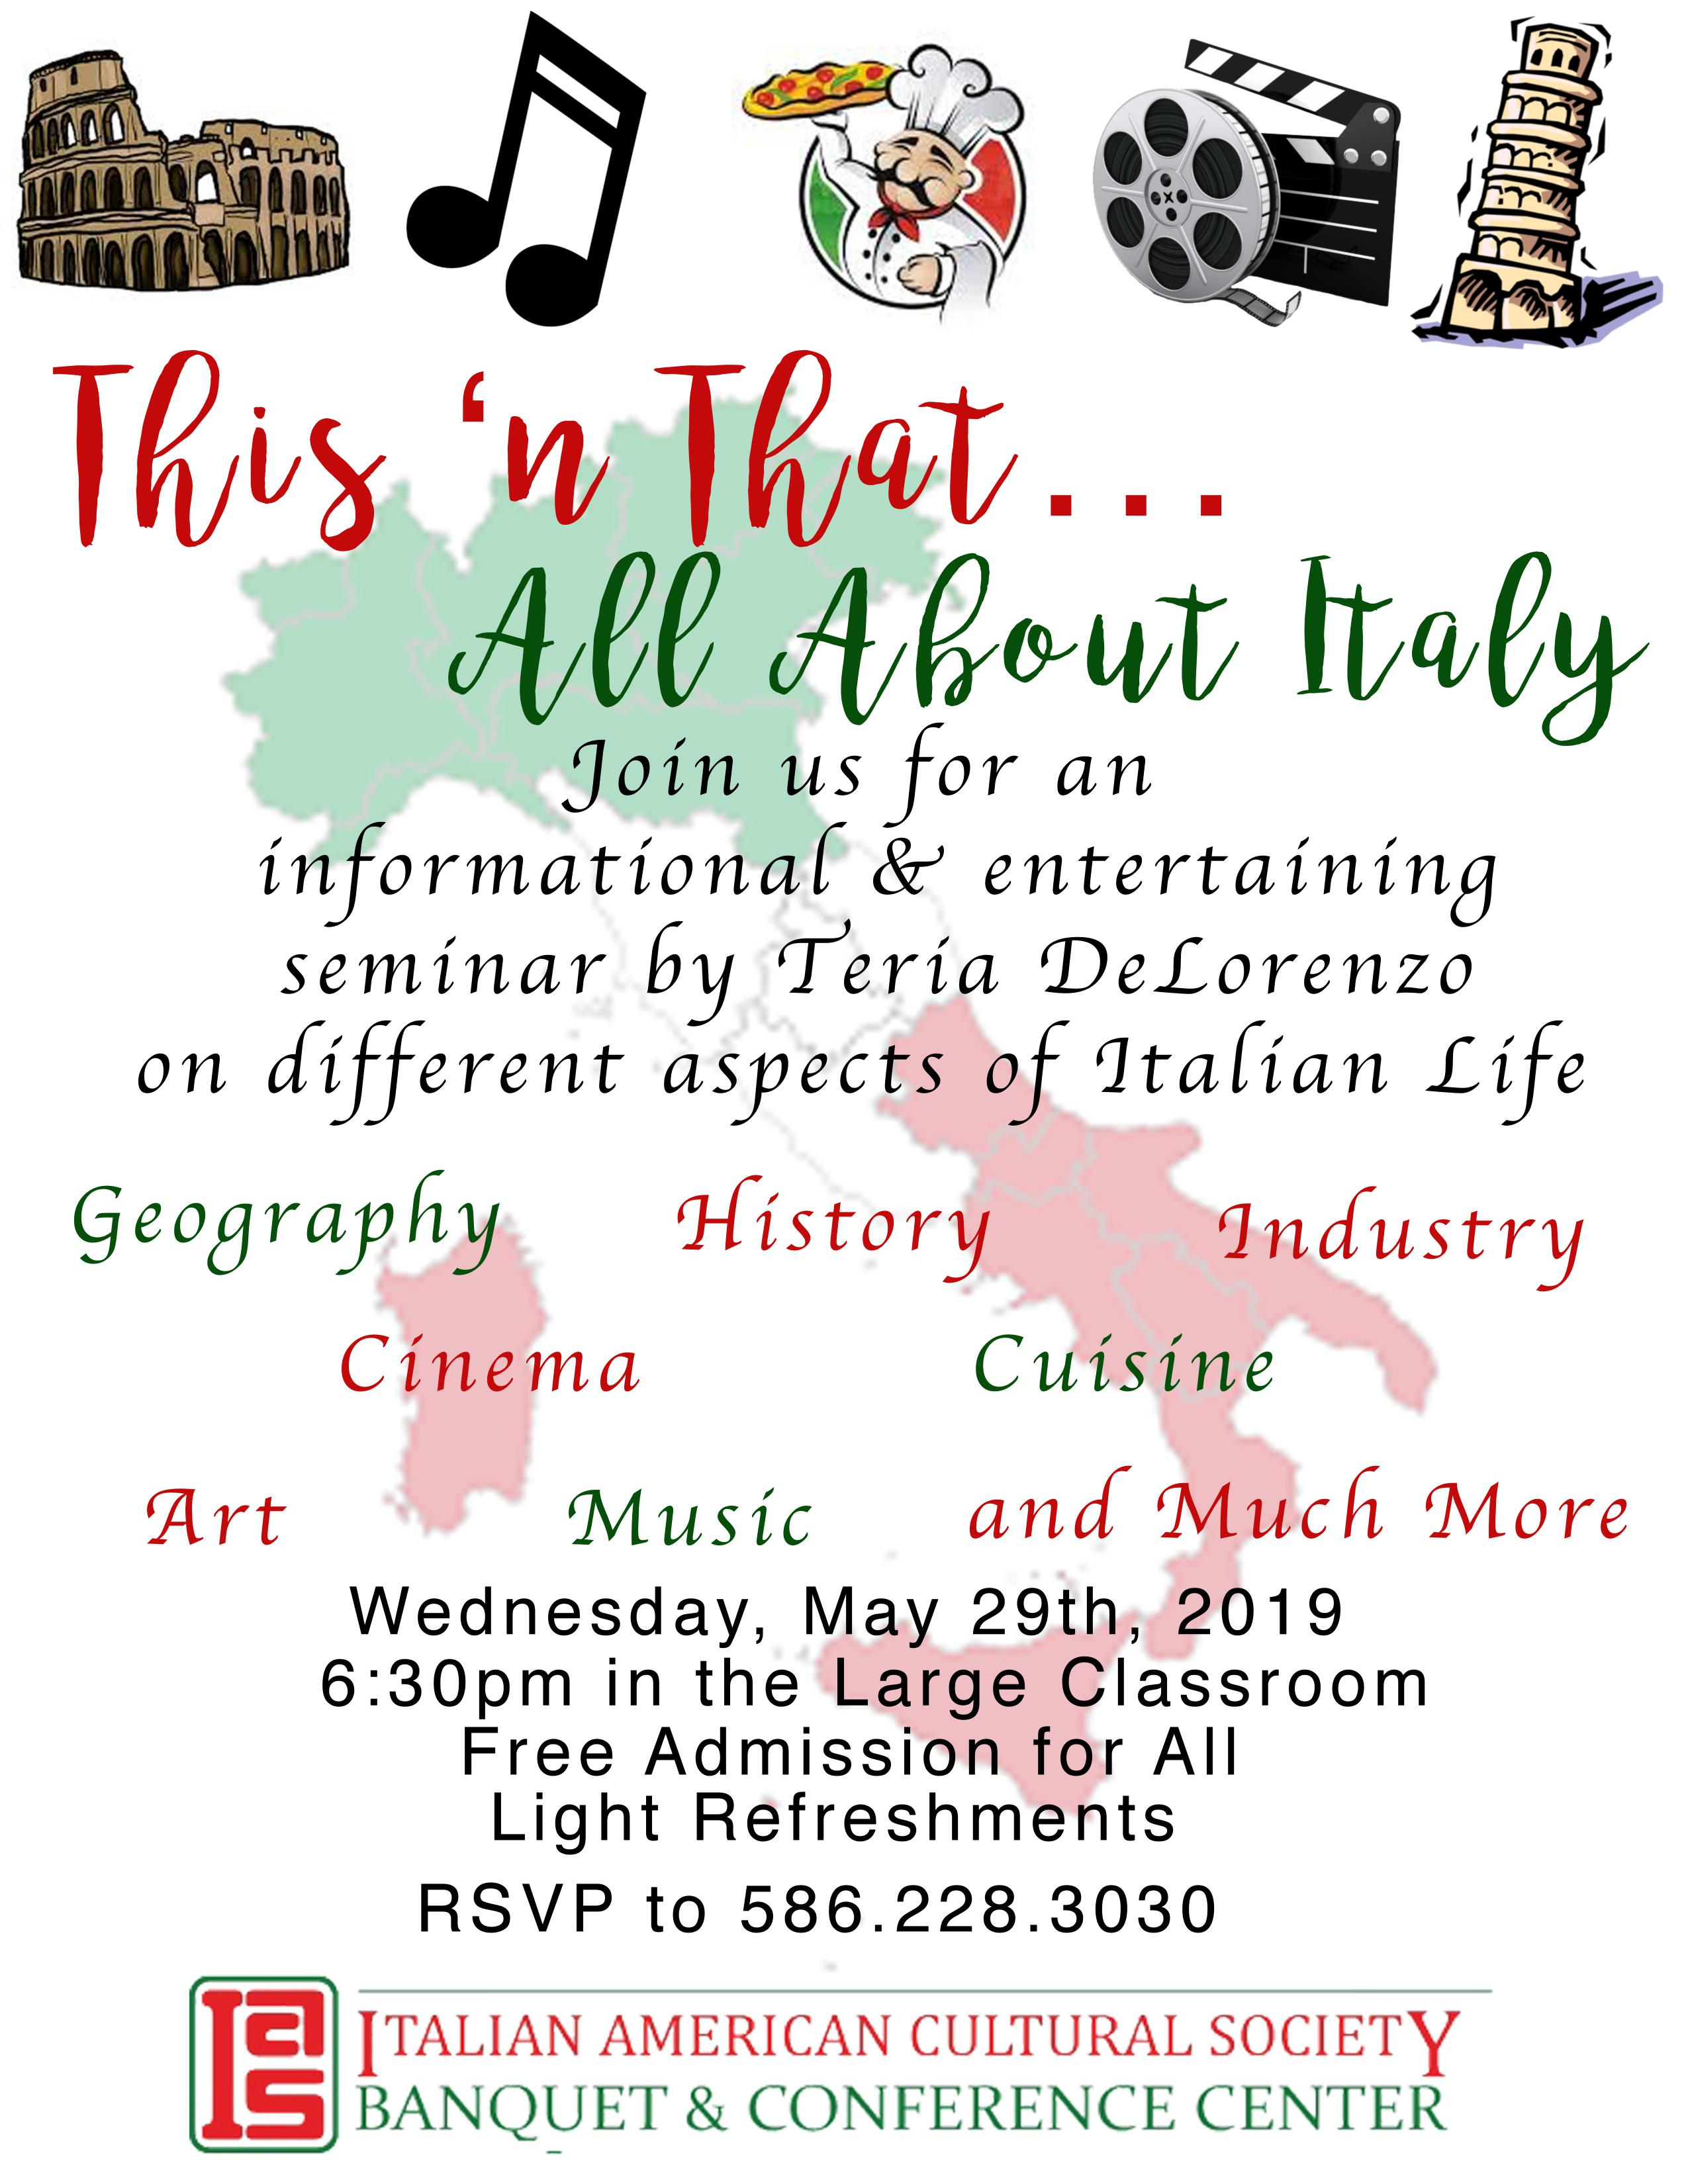 This 'n that...all about italy. Join us for an information and entertaining seminar by Teria DeLorenzo on different aspects of Italian Life. Geography, History, Indutsry, Cinema, Cuisine, Art, Music, and Much More. Wednesday, May 29th, 2019. 6:30pm in the large classroom. free admission for all. Light refreshments. rsvp to 5862283030